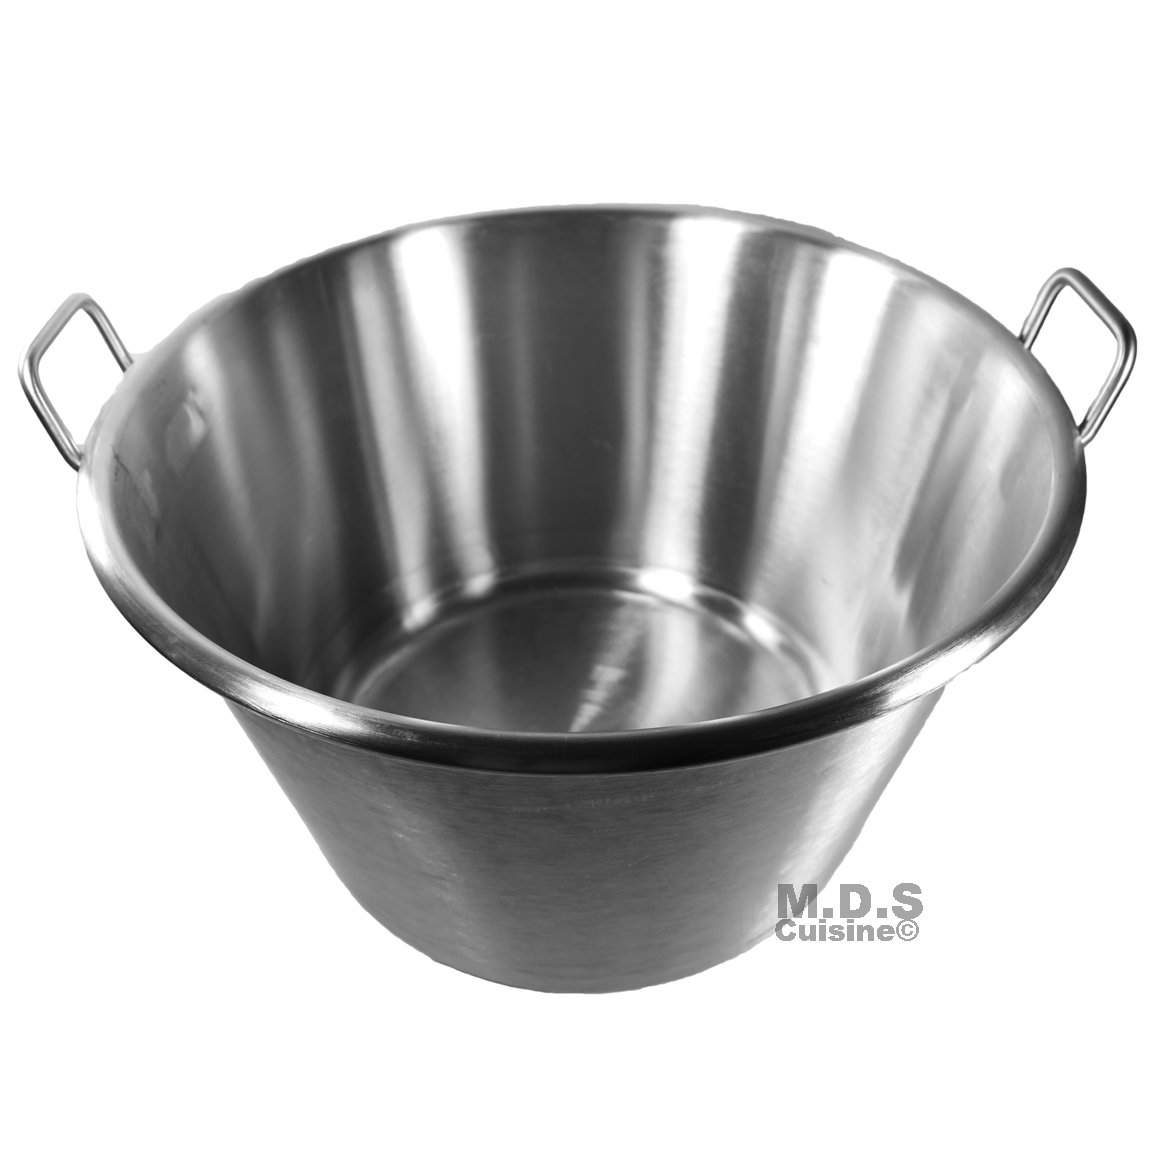 Large Cazo Stainless Steel 21'' Caso para Carnitas Gas Heavy Duty Wok Acero Inoxidable by M.D.S Cuisine Cookwares